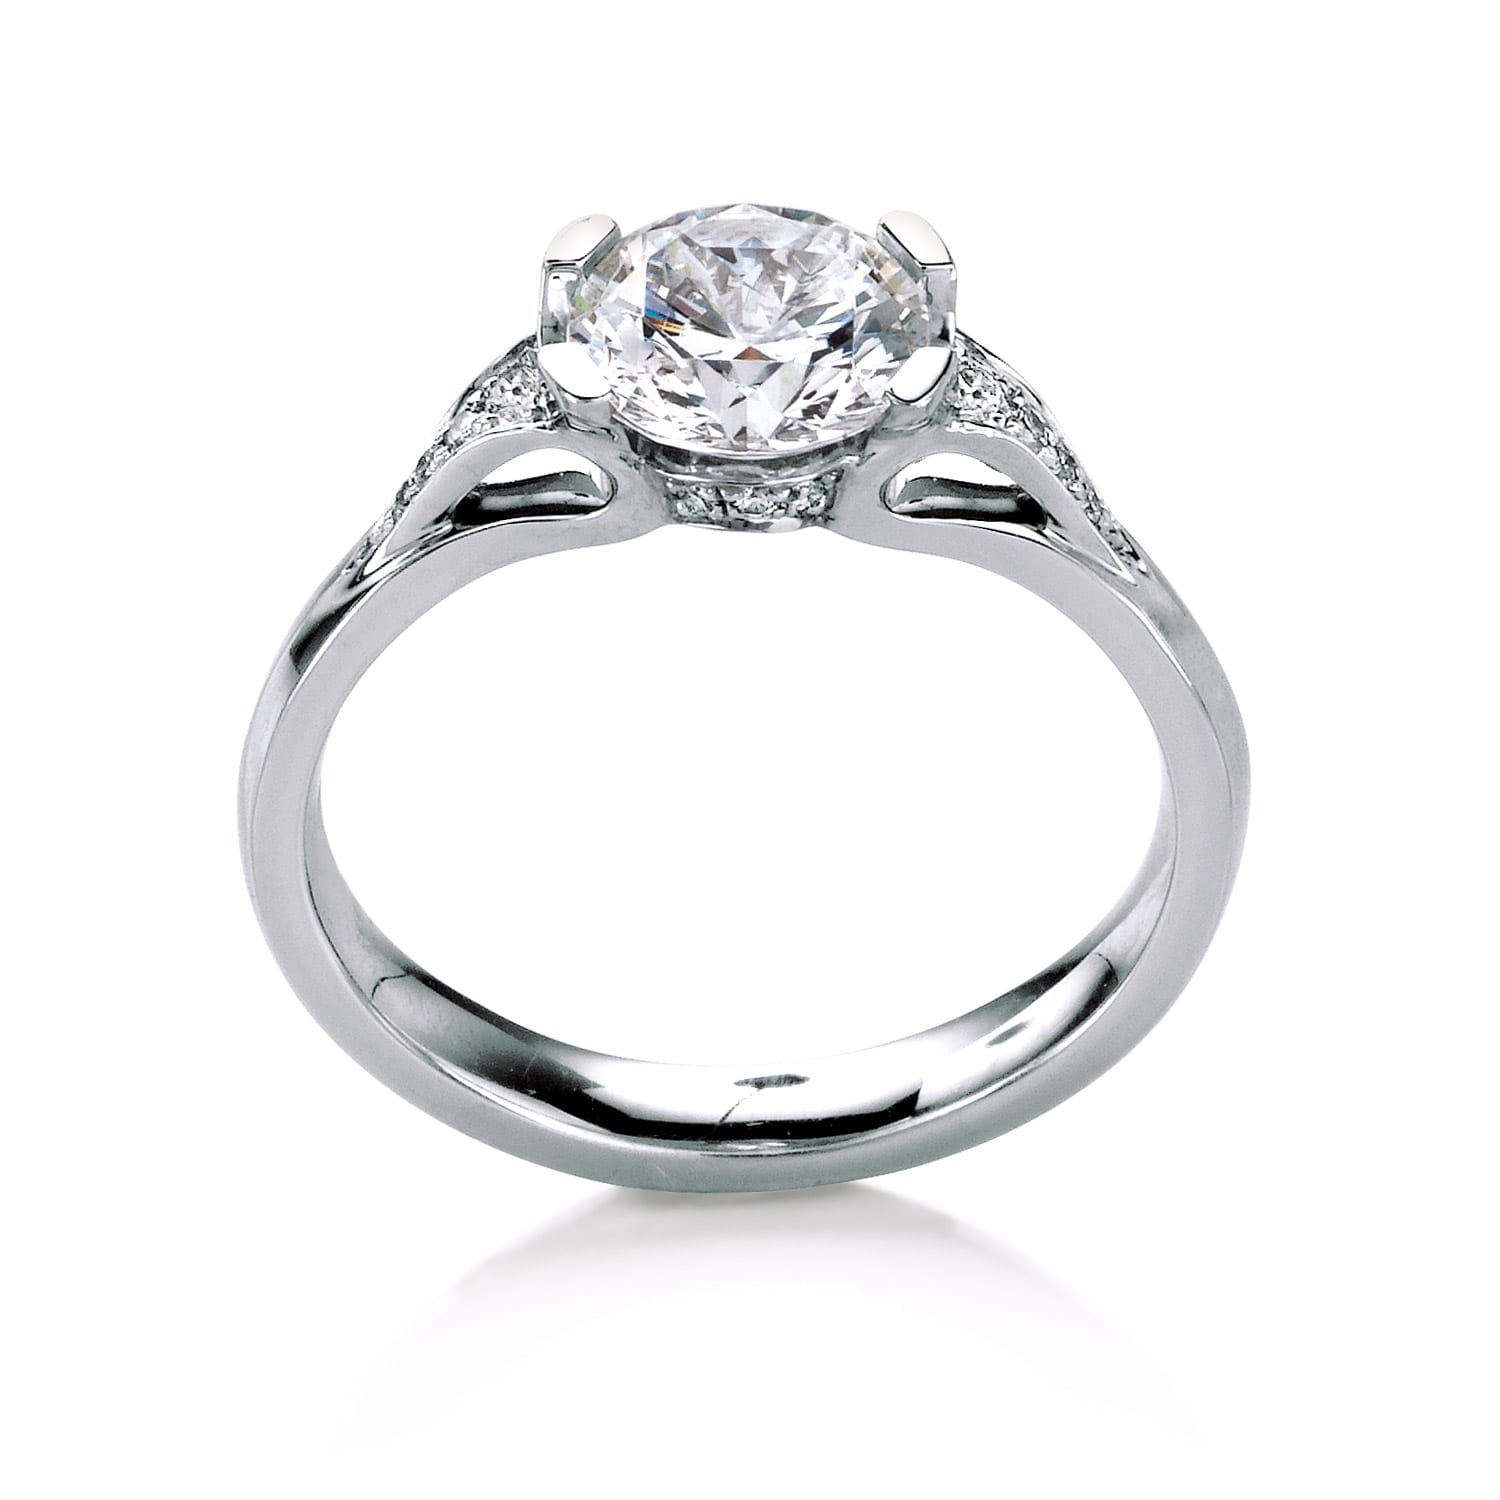 low cathedral dia under platinum pave surprise with wedding rings solitaire side profile